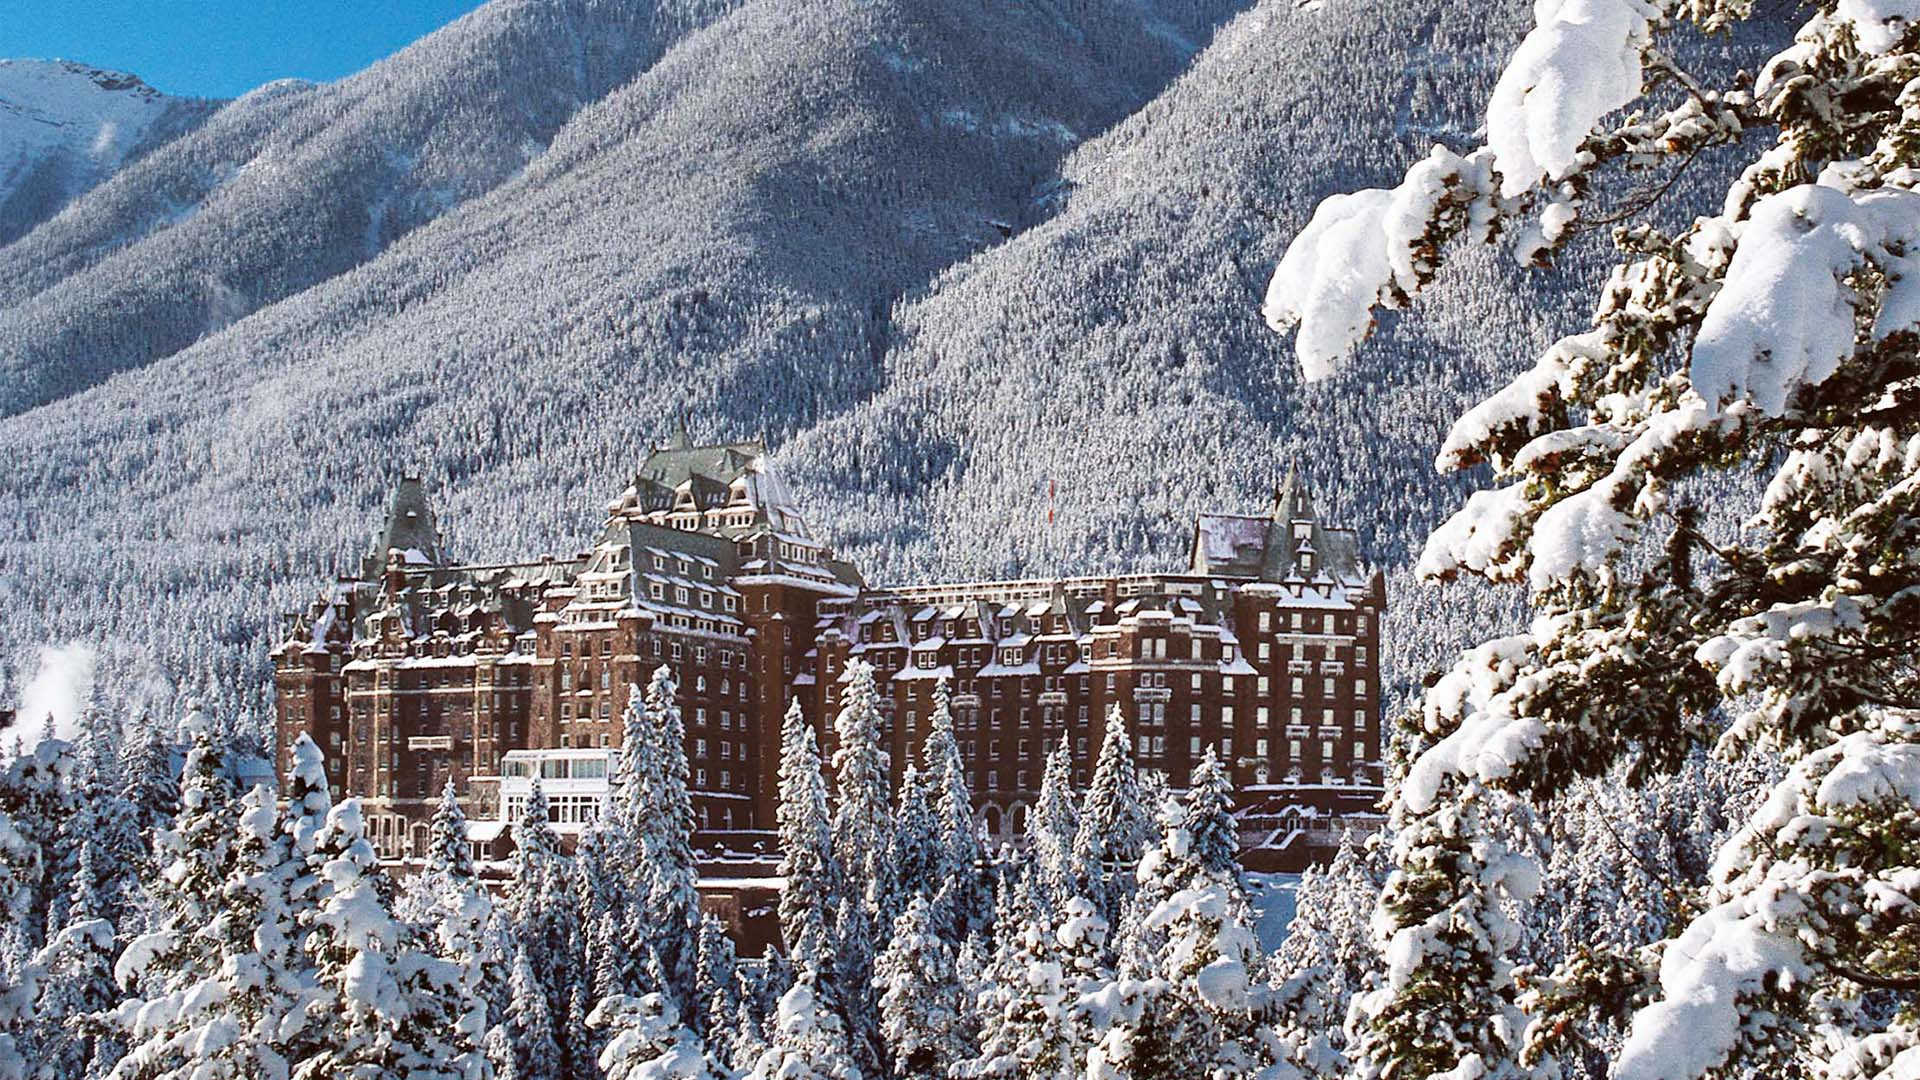 Castle in the Rockies, Fairmont Banff Springs